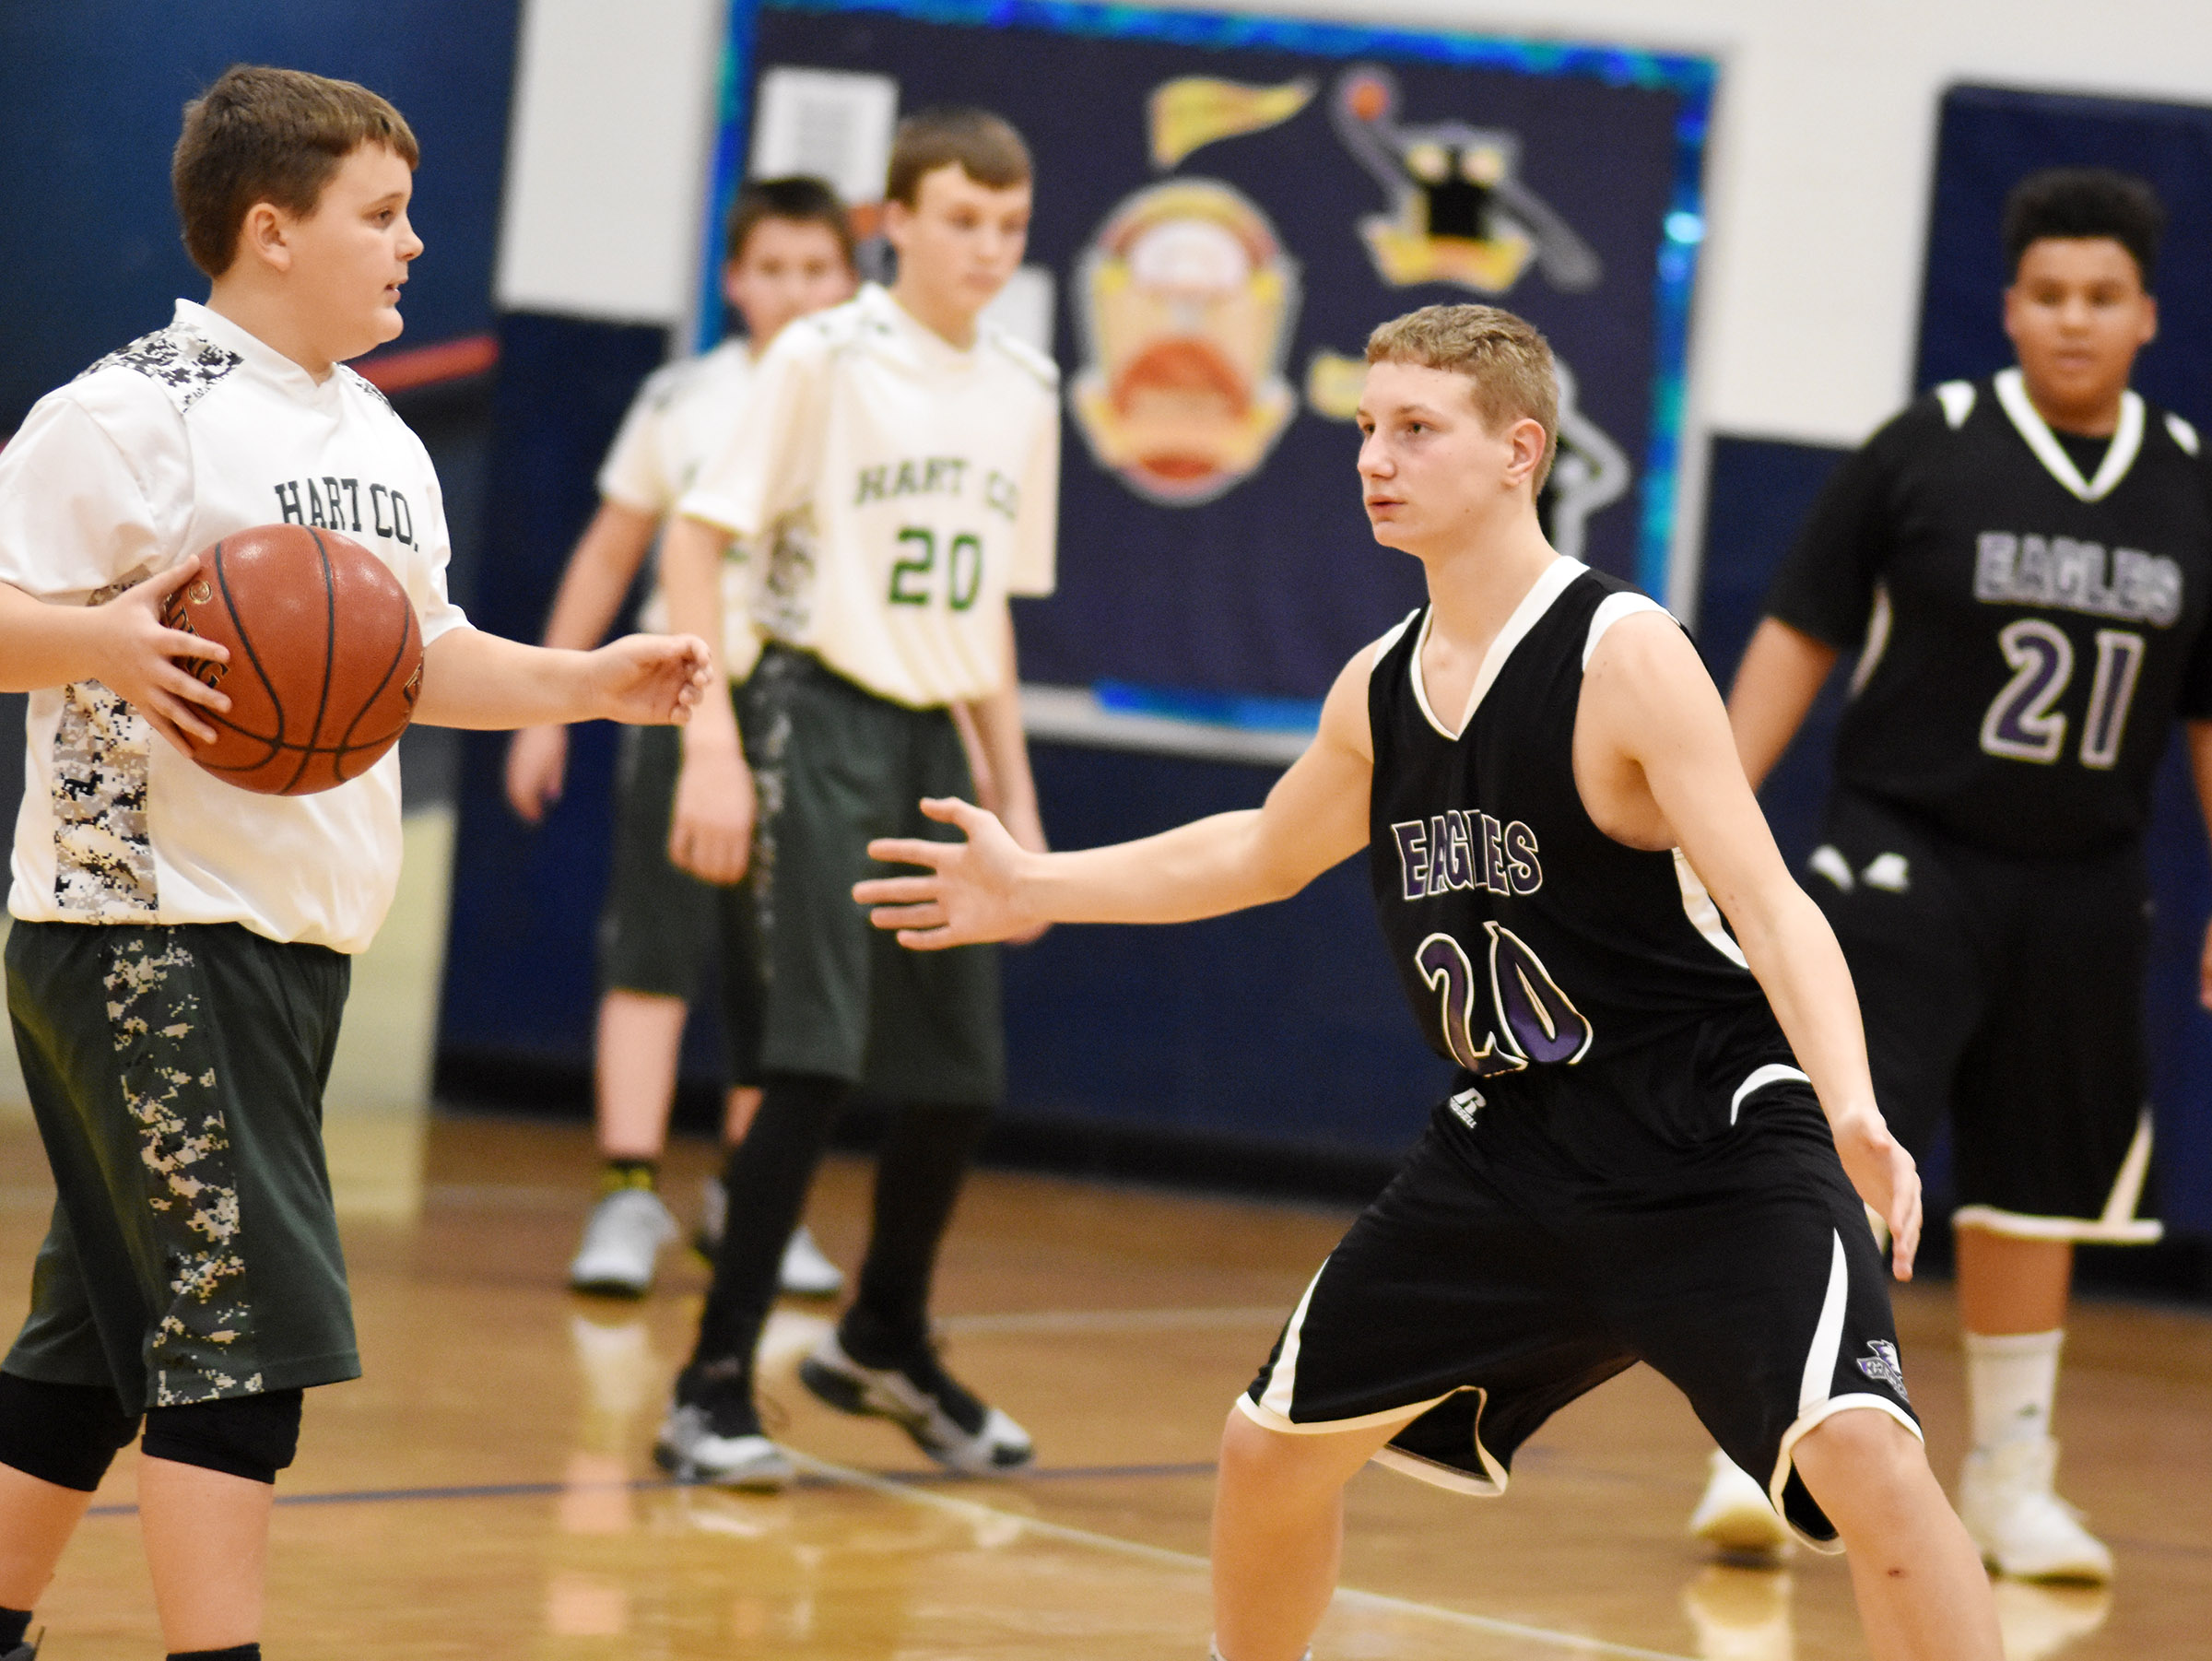 CMS seventh-grader Damon Johnson plays defense.